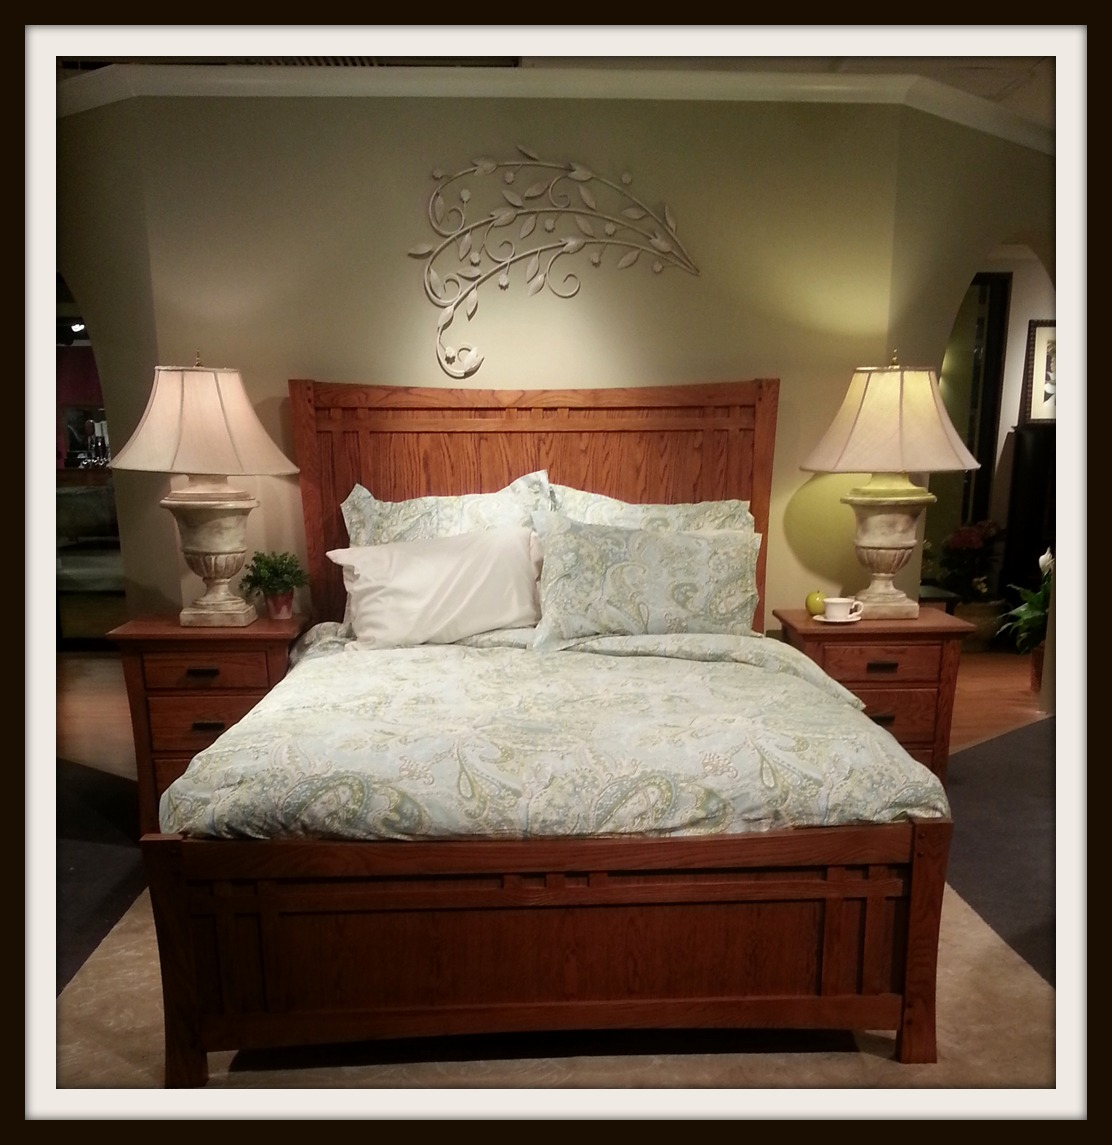 Generations Home Furnishings: Out With The Old & In With The New !